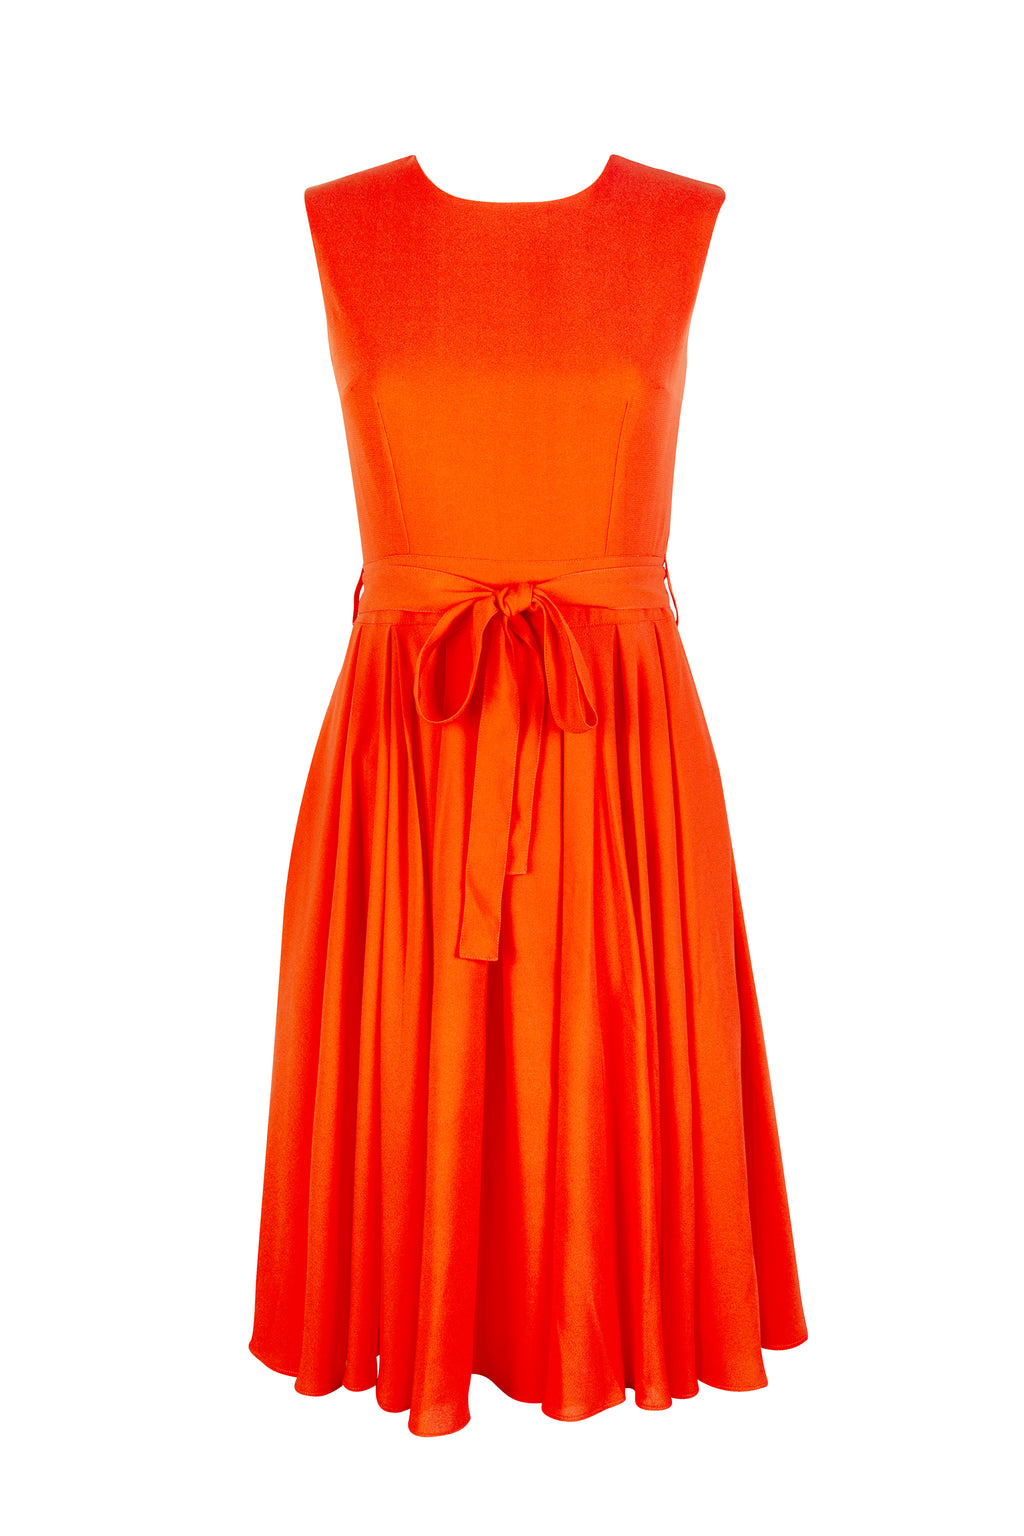 SAFFRON SUMMER DRESS